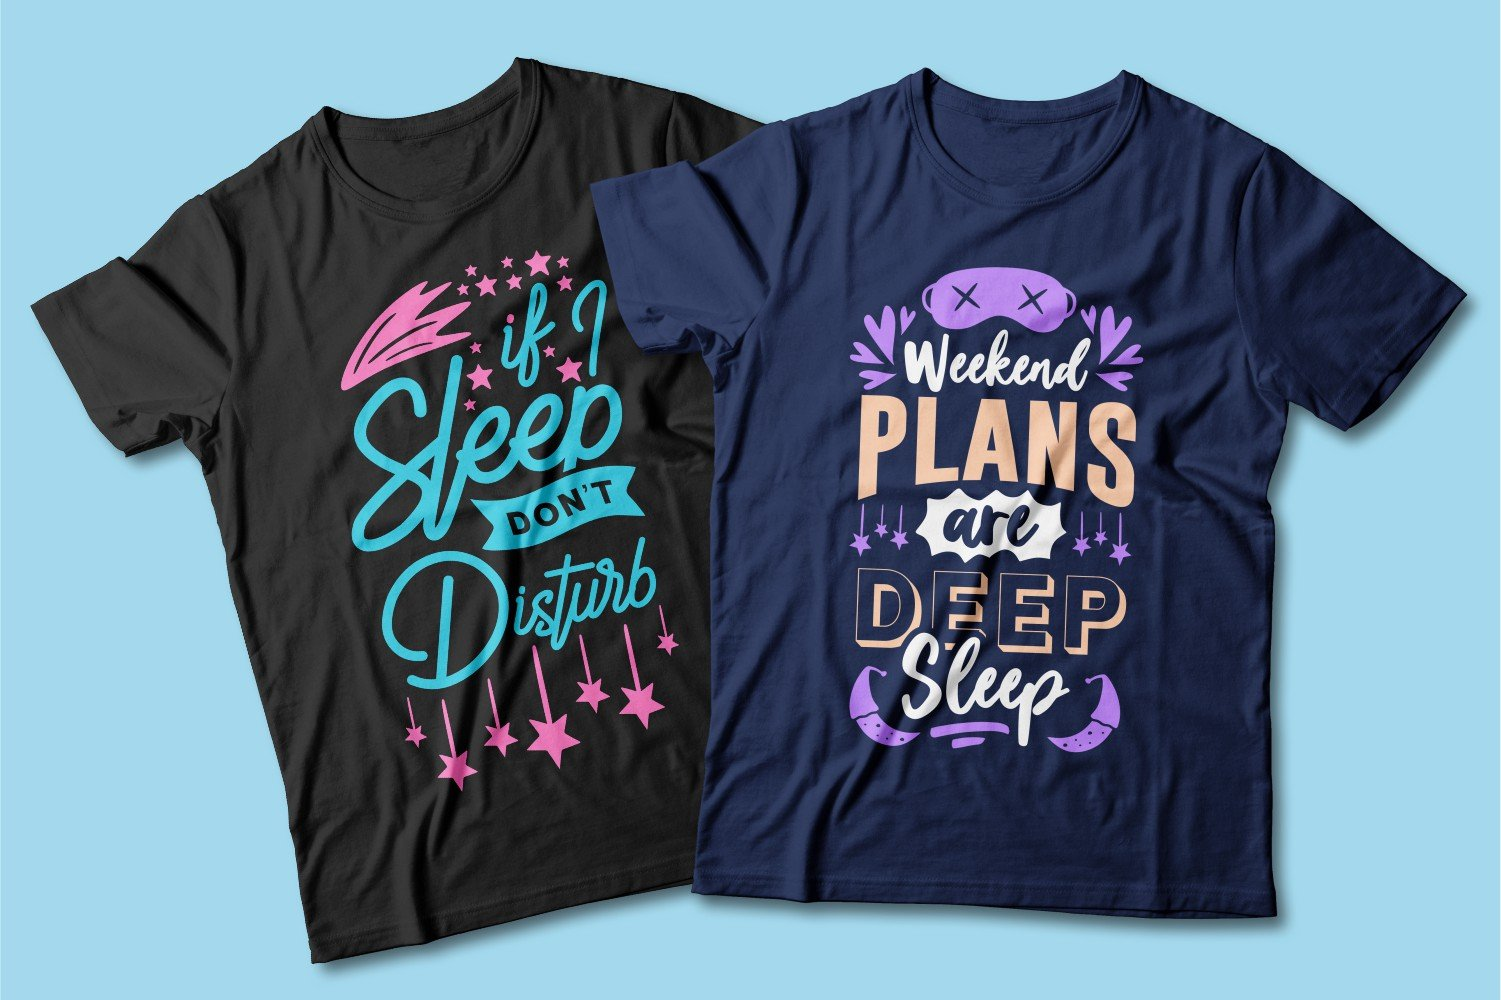 Black and blue T-shirts with a crew neck and a sleep mask.